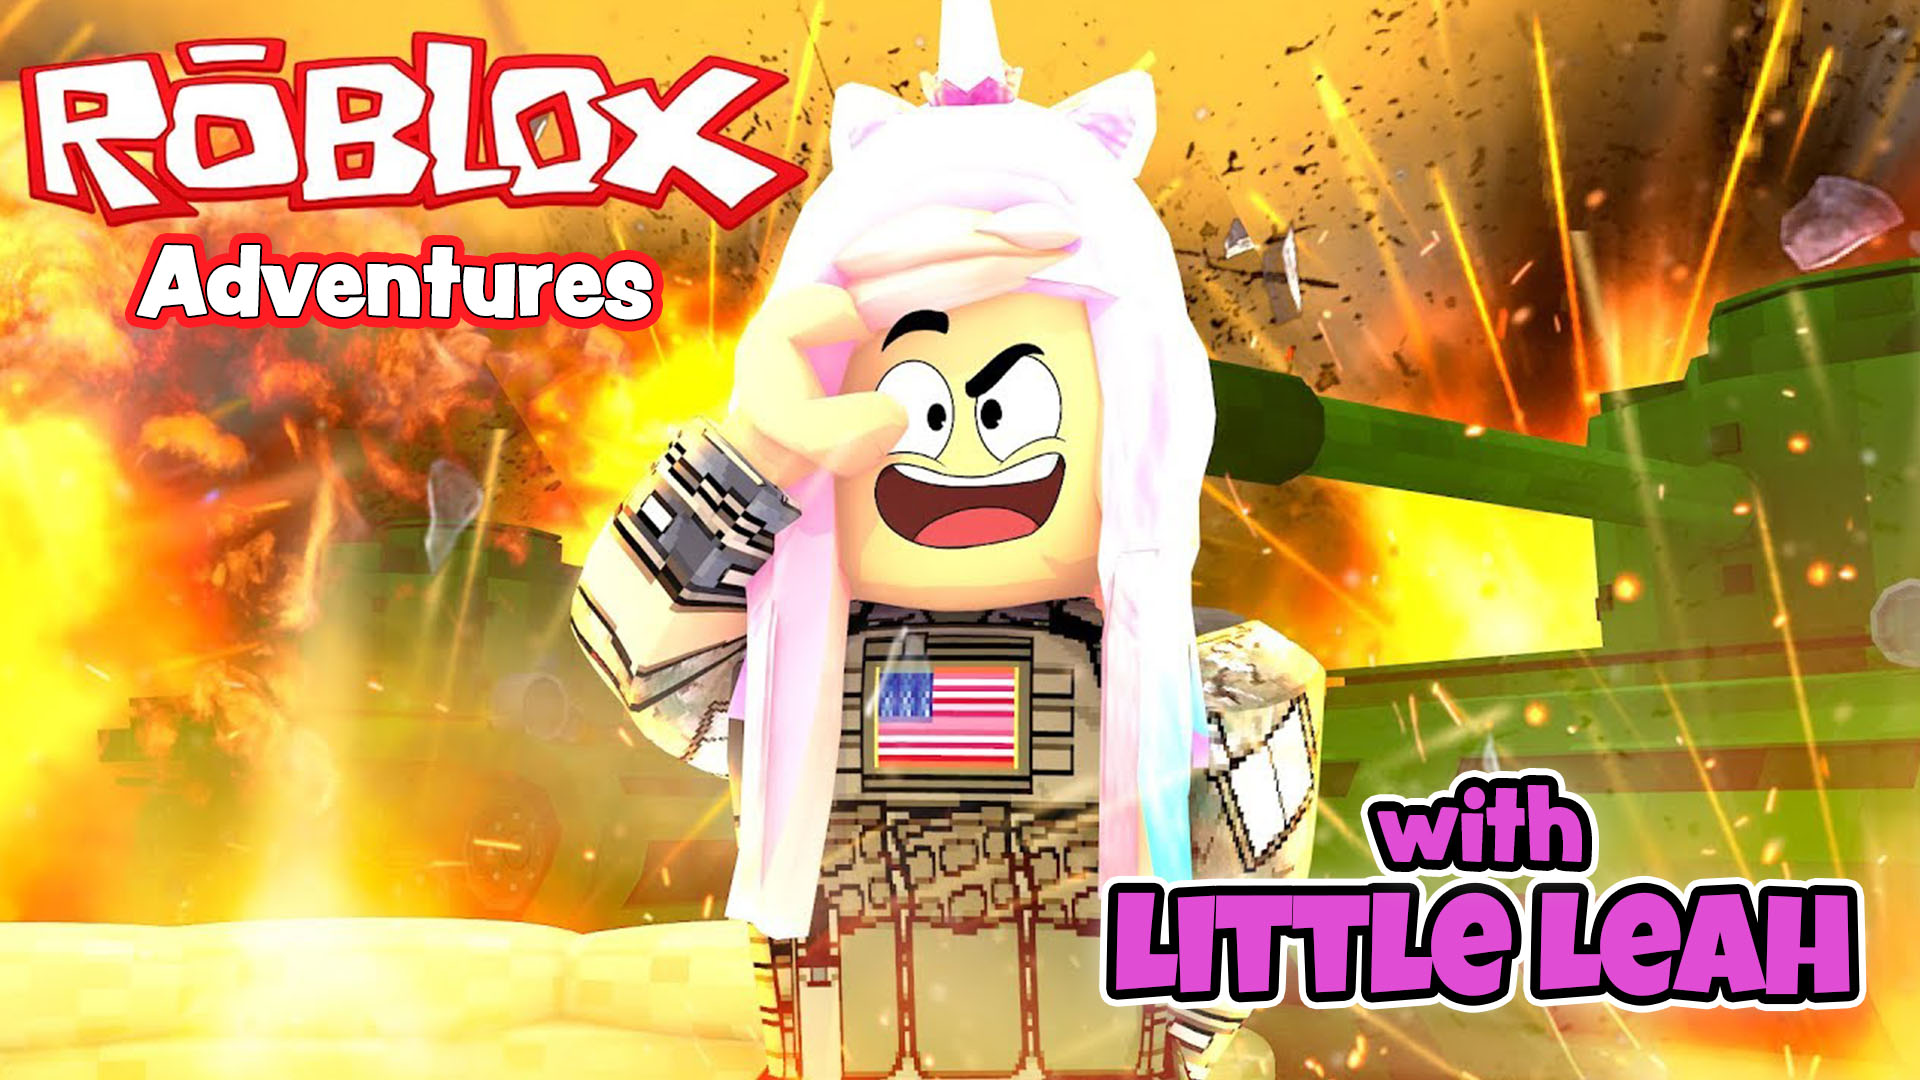 Roblox Adventure Visiting Meep City With Little Kelly Youtube Watch Clip Roblox Meepcity City With Little Kelly Prime Video